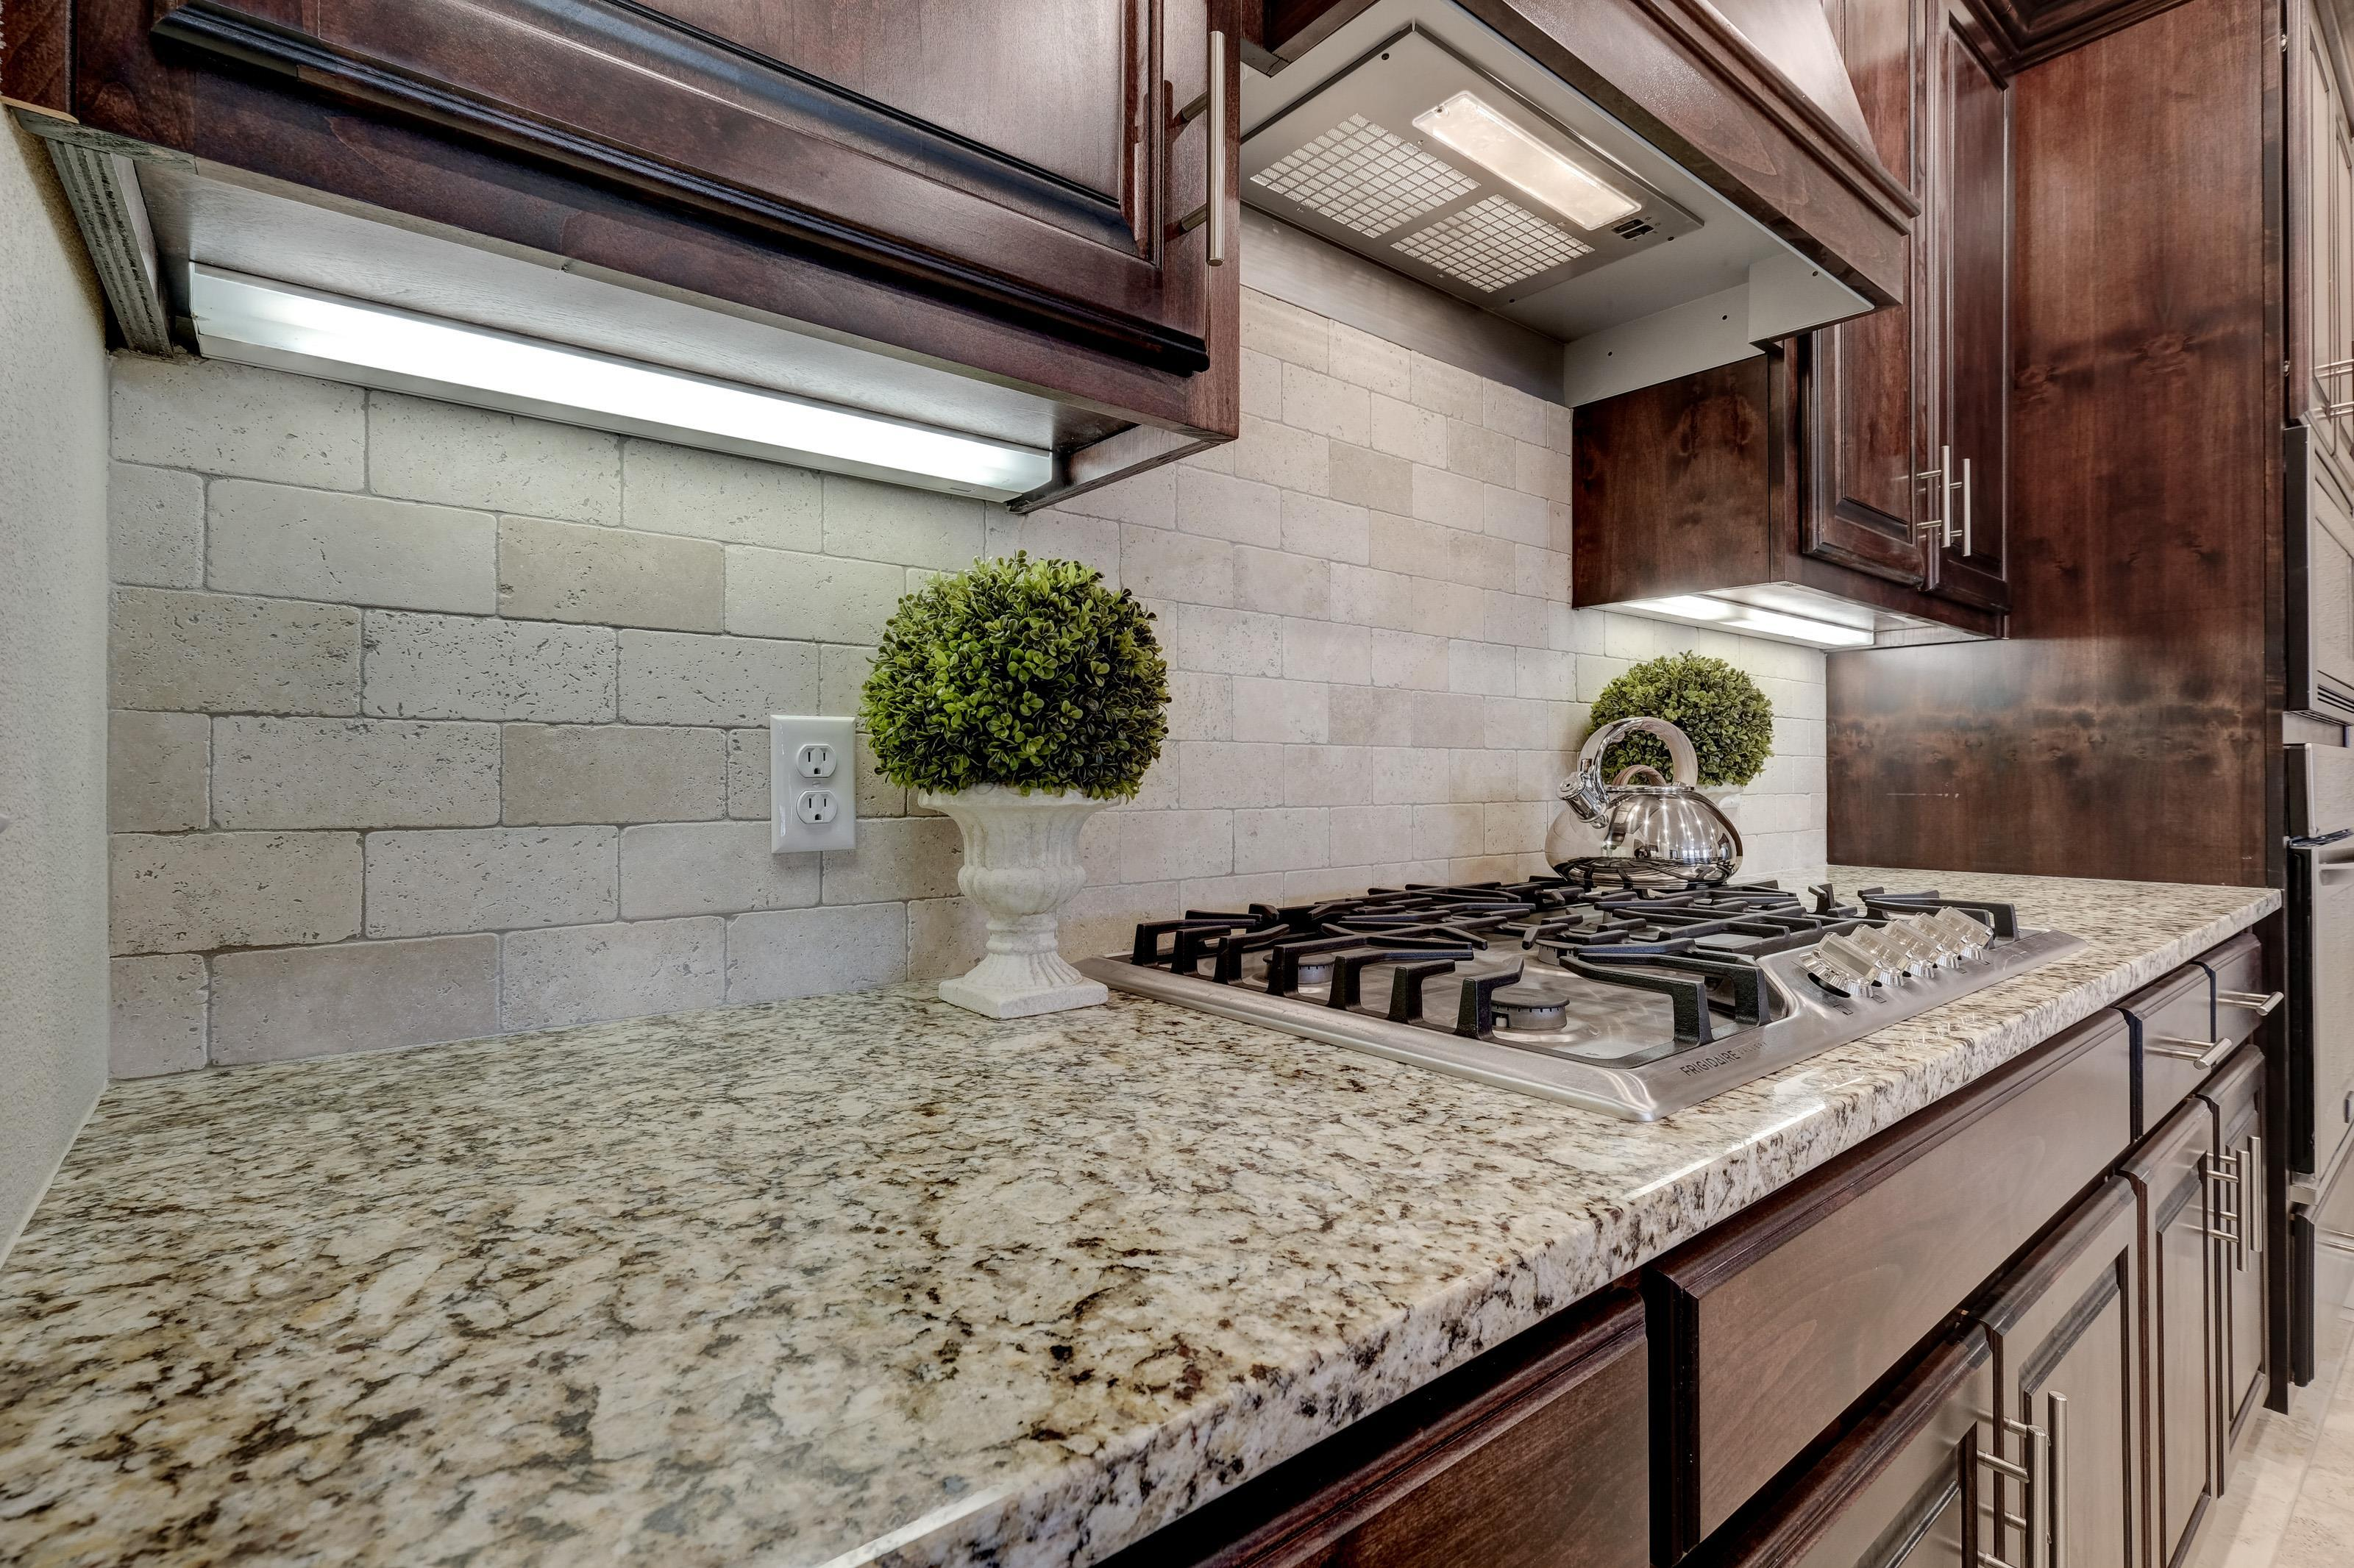 Kitchen featured in the 2600T Series By Schuber Mitchell Homes in Fayetteville, AR